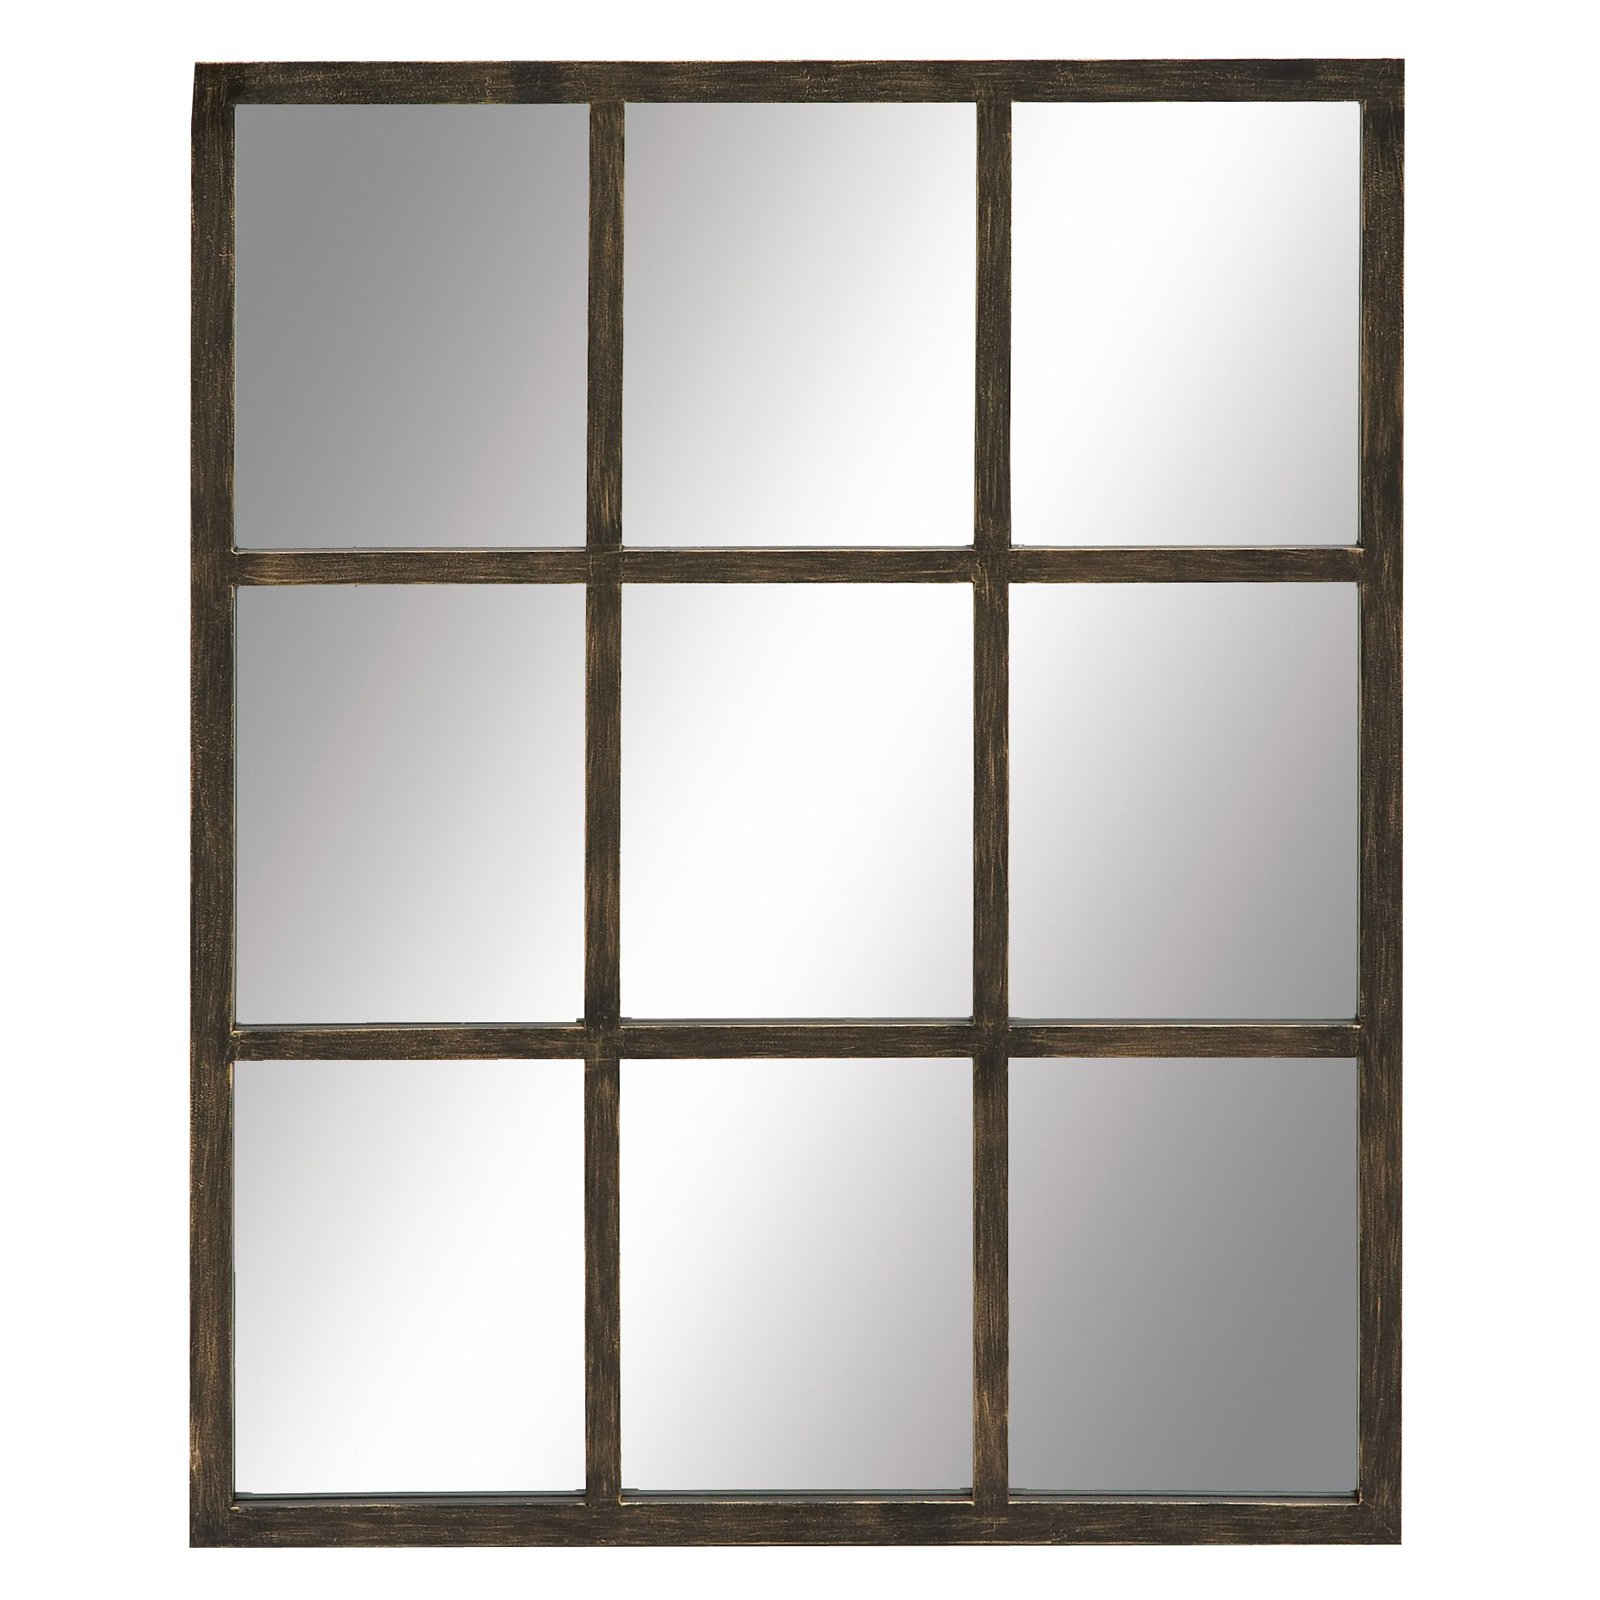 Studio 350 Traditional Square Mirror by Overstock